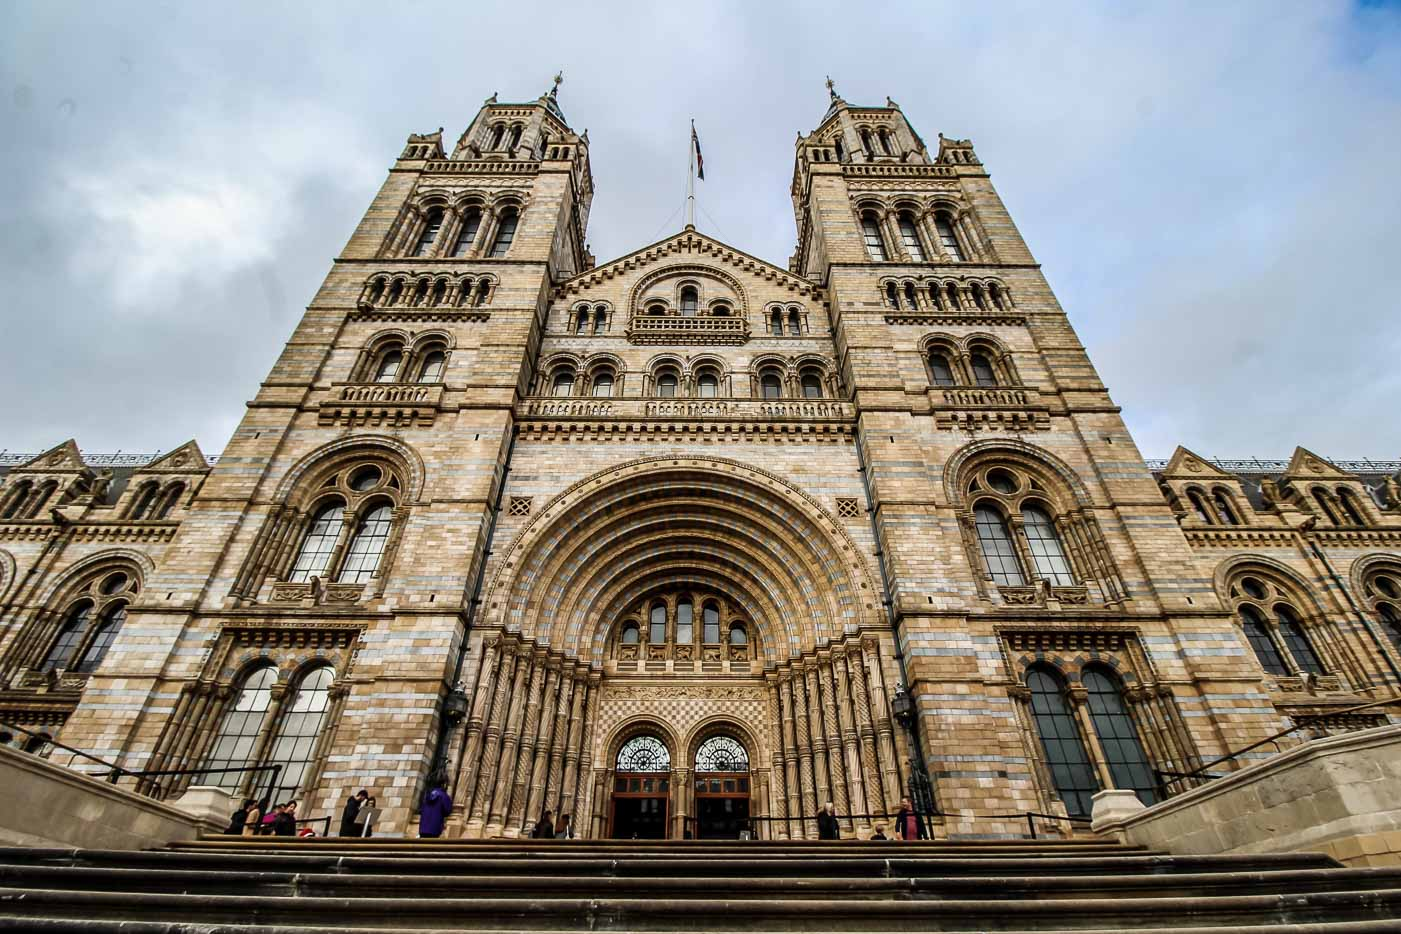 London's most picture-worthy free attraction: Natural History Museum